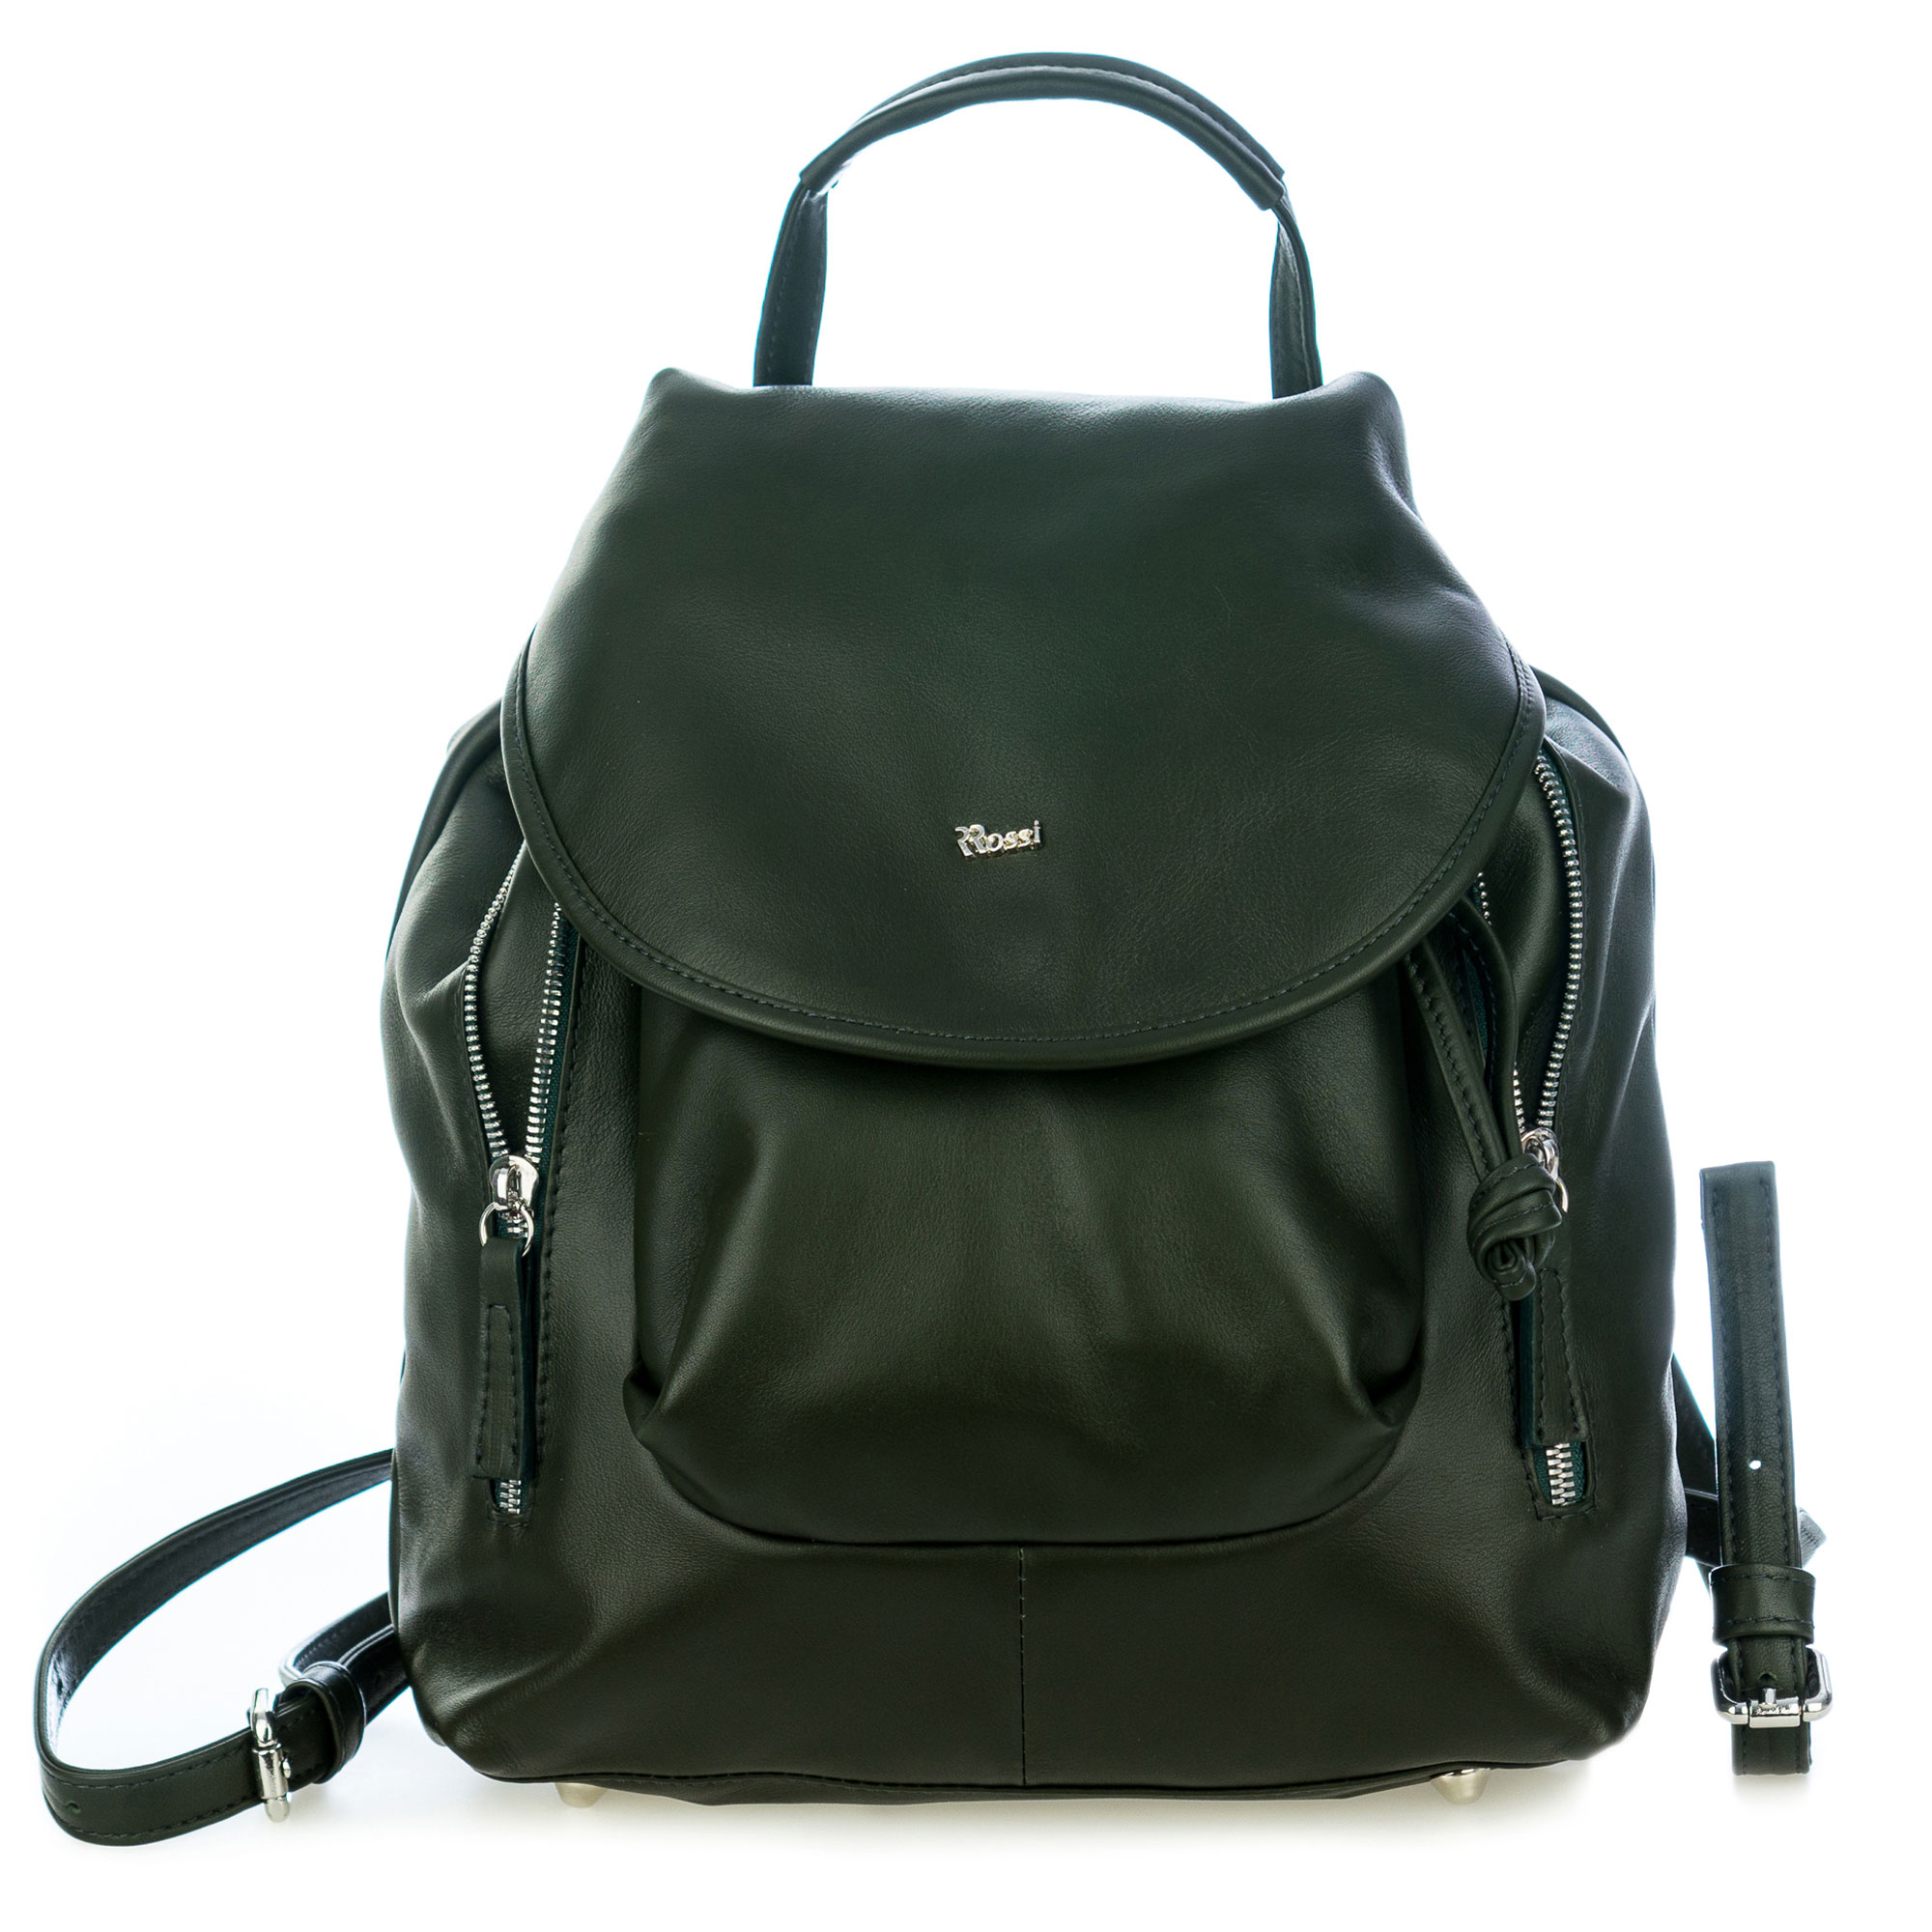 Bruno Rossi Italian Made Dark Green Calf Leather Women's Backpack